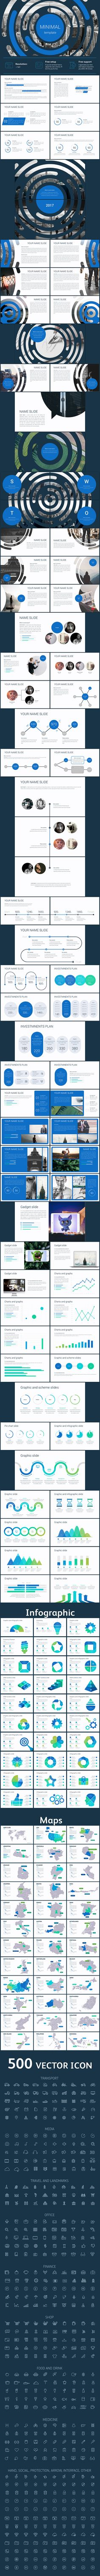 Minimal clean template - #Creative #PowerPoint #Templates Download here: https://graphicriver.net/item/minimal-clean-template/19379269?ref=alena994